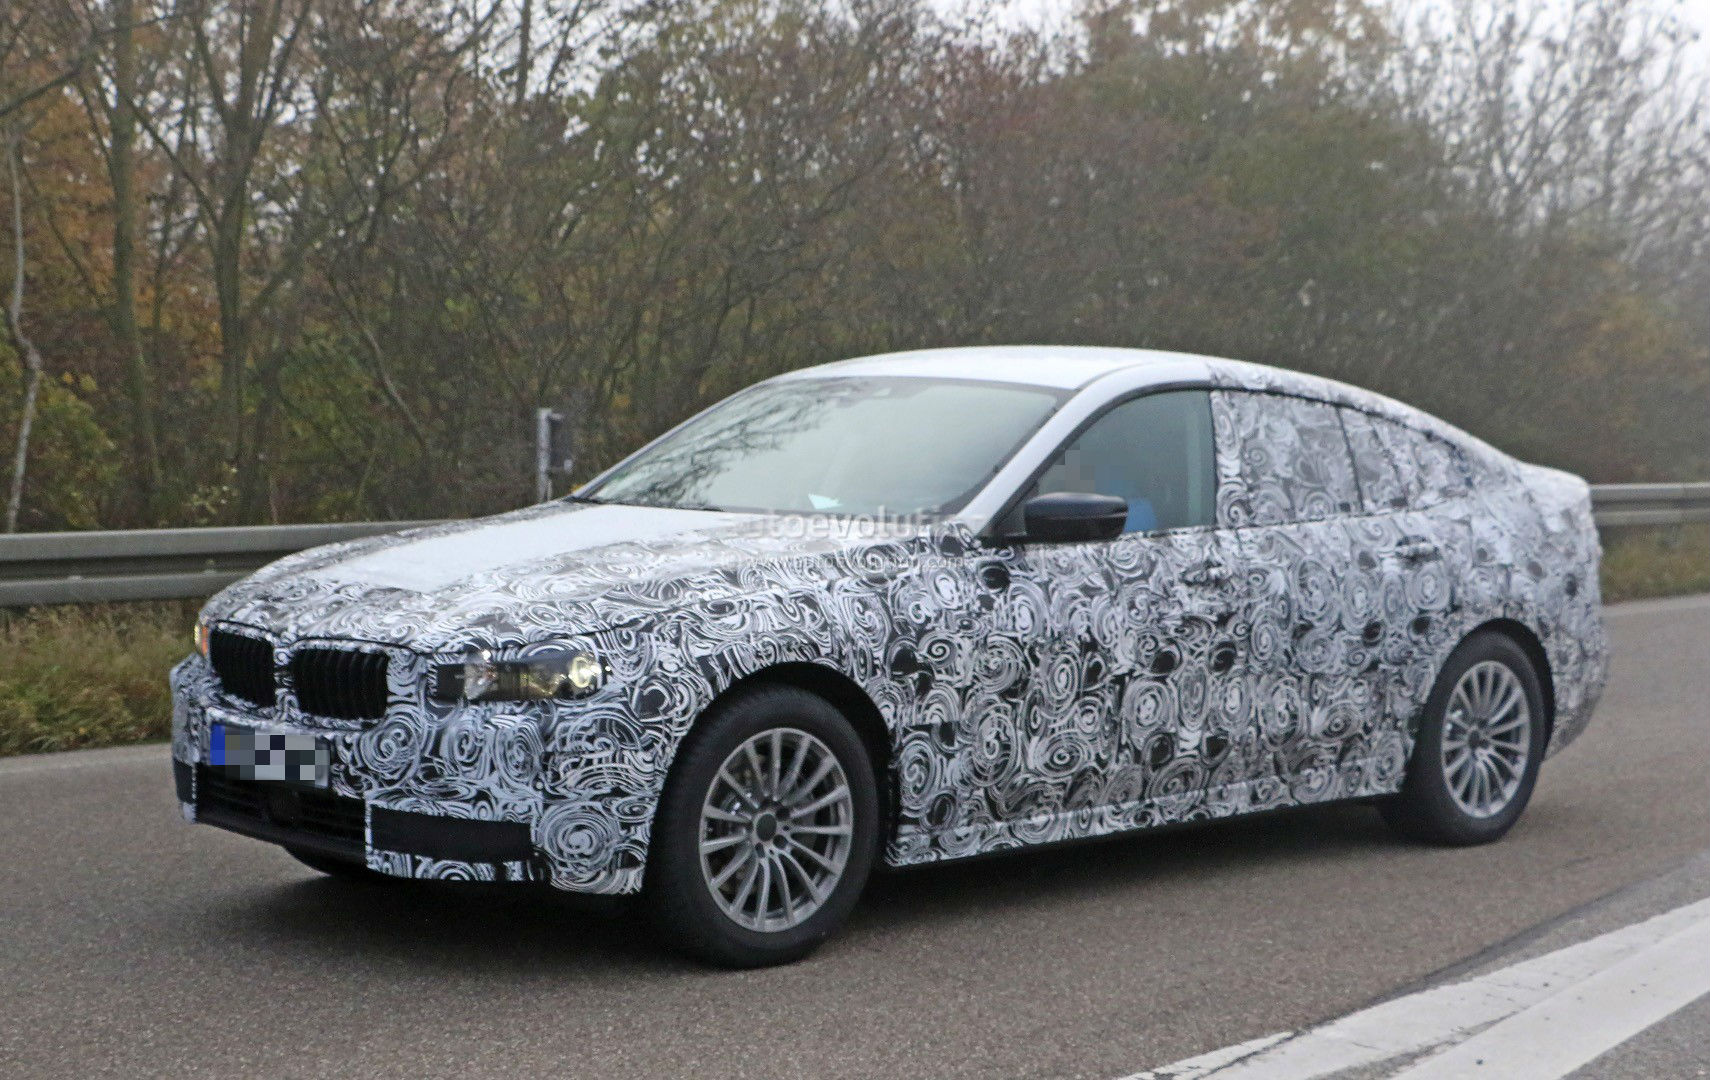 2017-bmw-5​-series-gt​-spied-up-​close-for-​the-first-​time-photo​-gallery_7